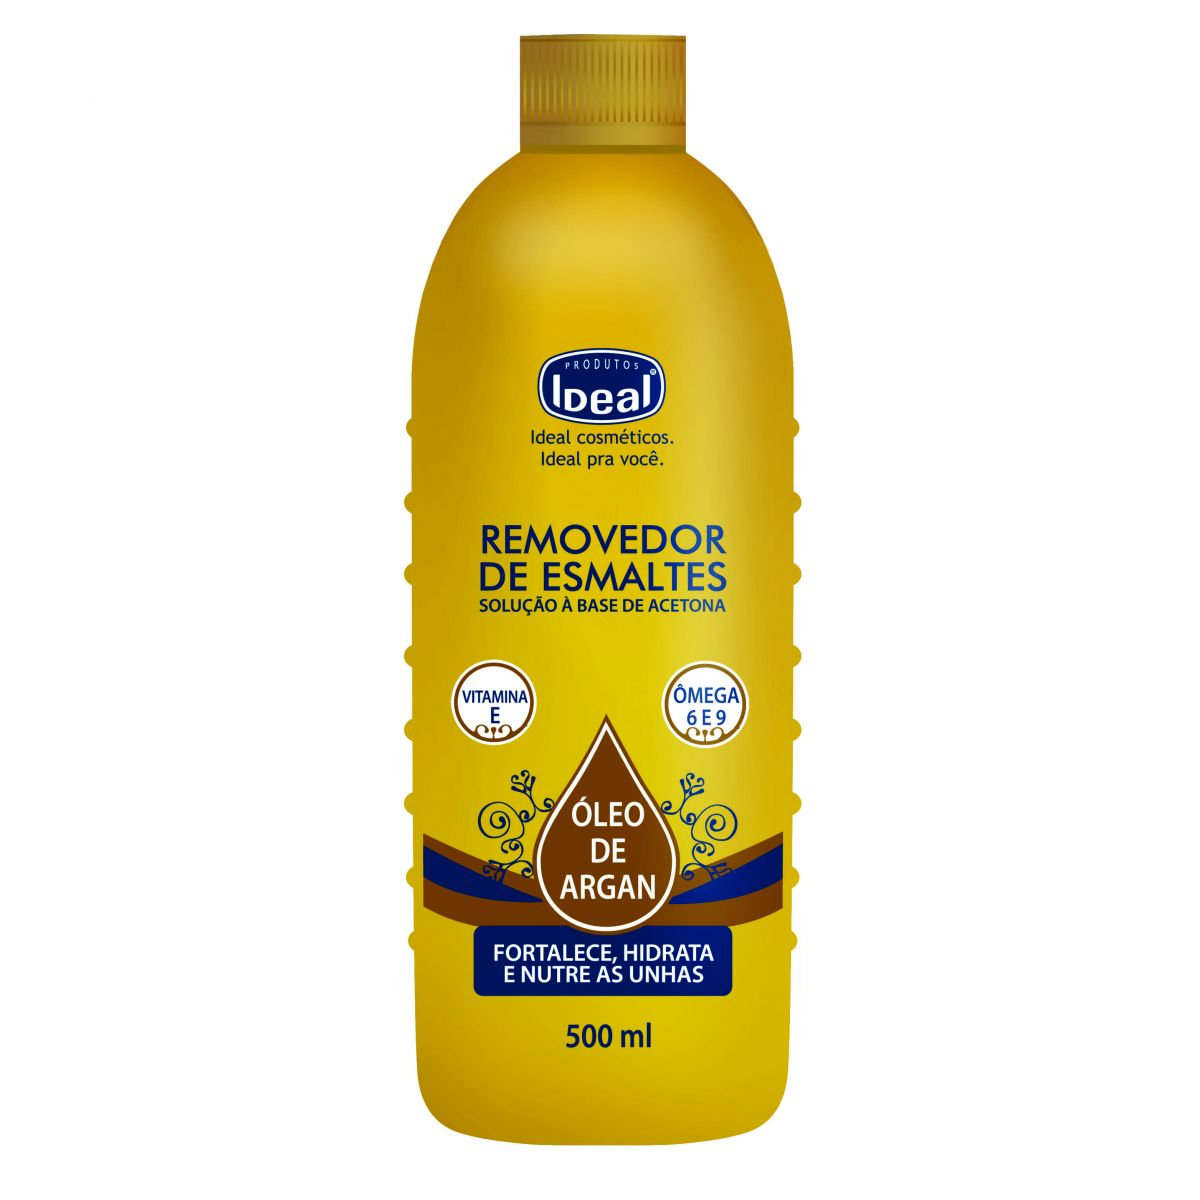 Removedor de Esmaltes Óleo de Argan 500ml - Ideal